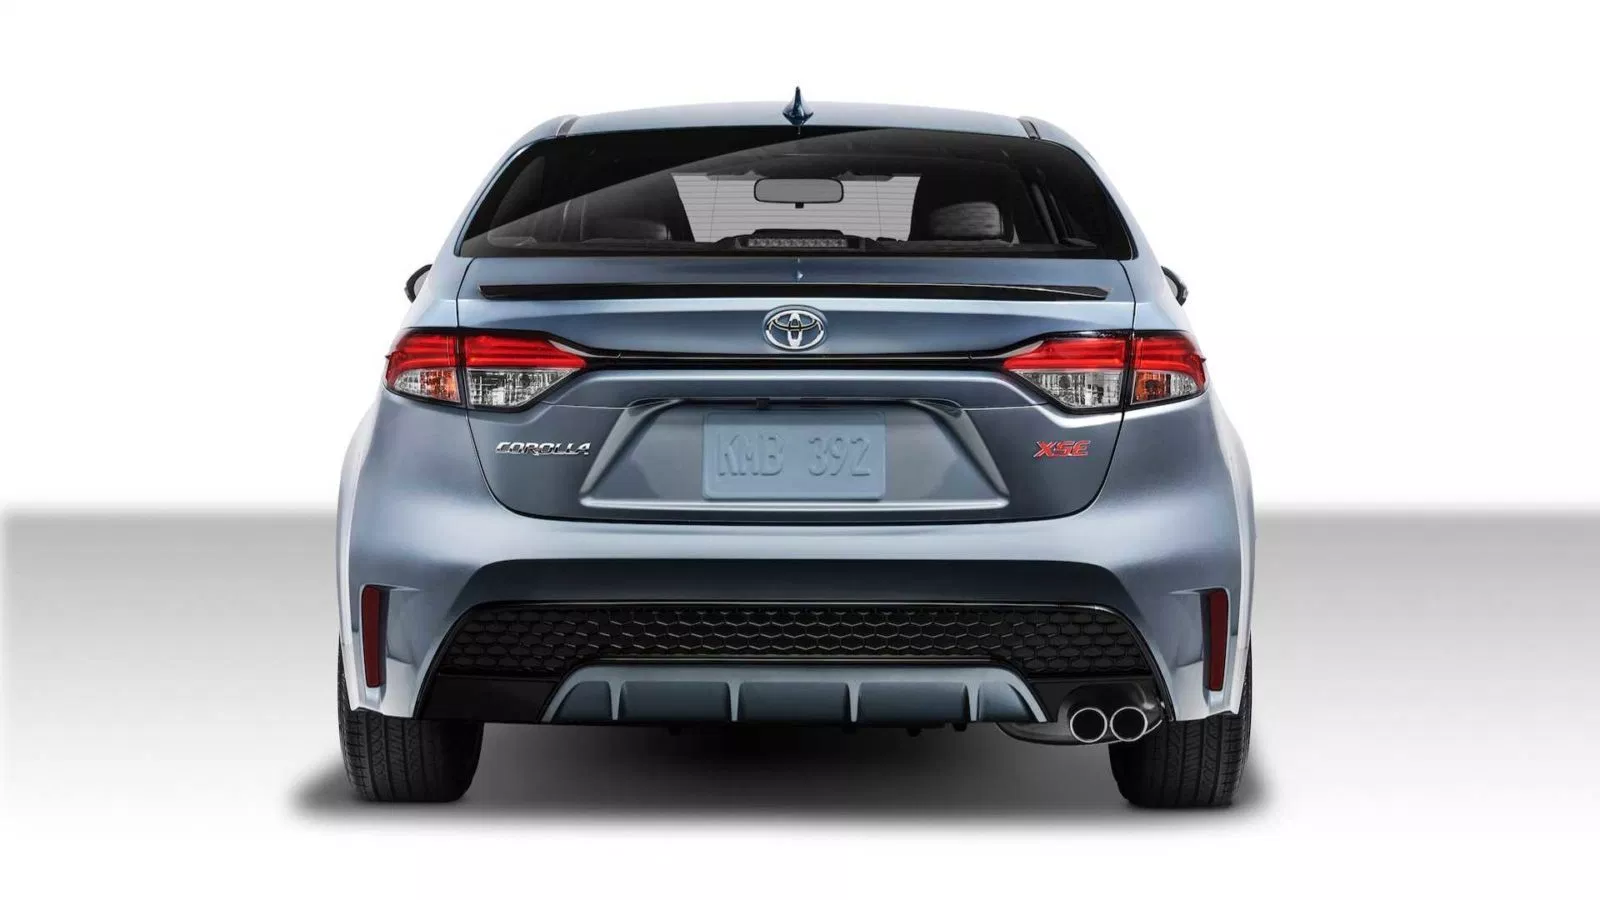 Toyota Corolla 2020 Exterior4 Latest information about